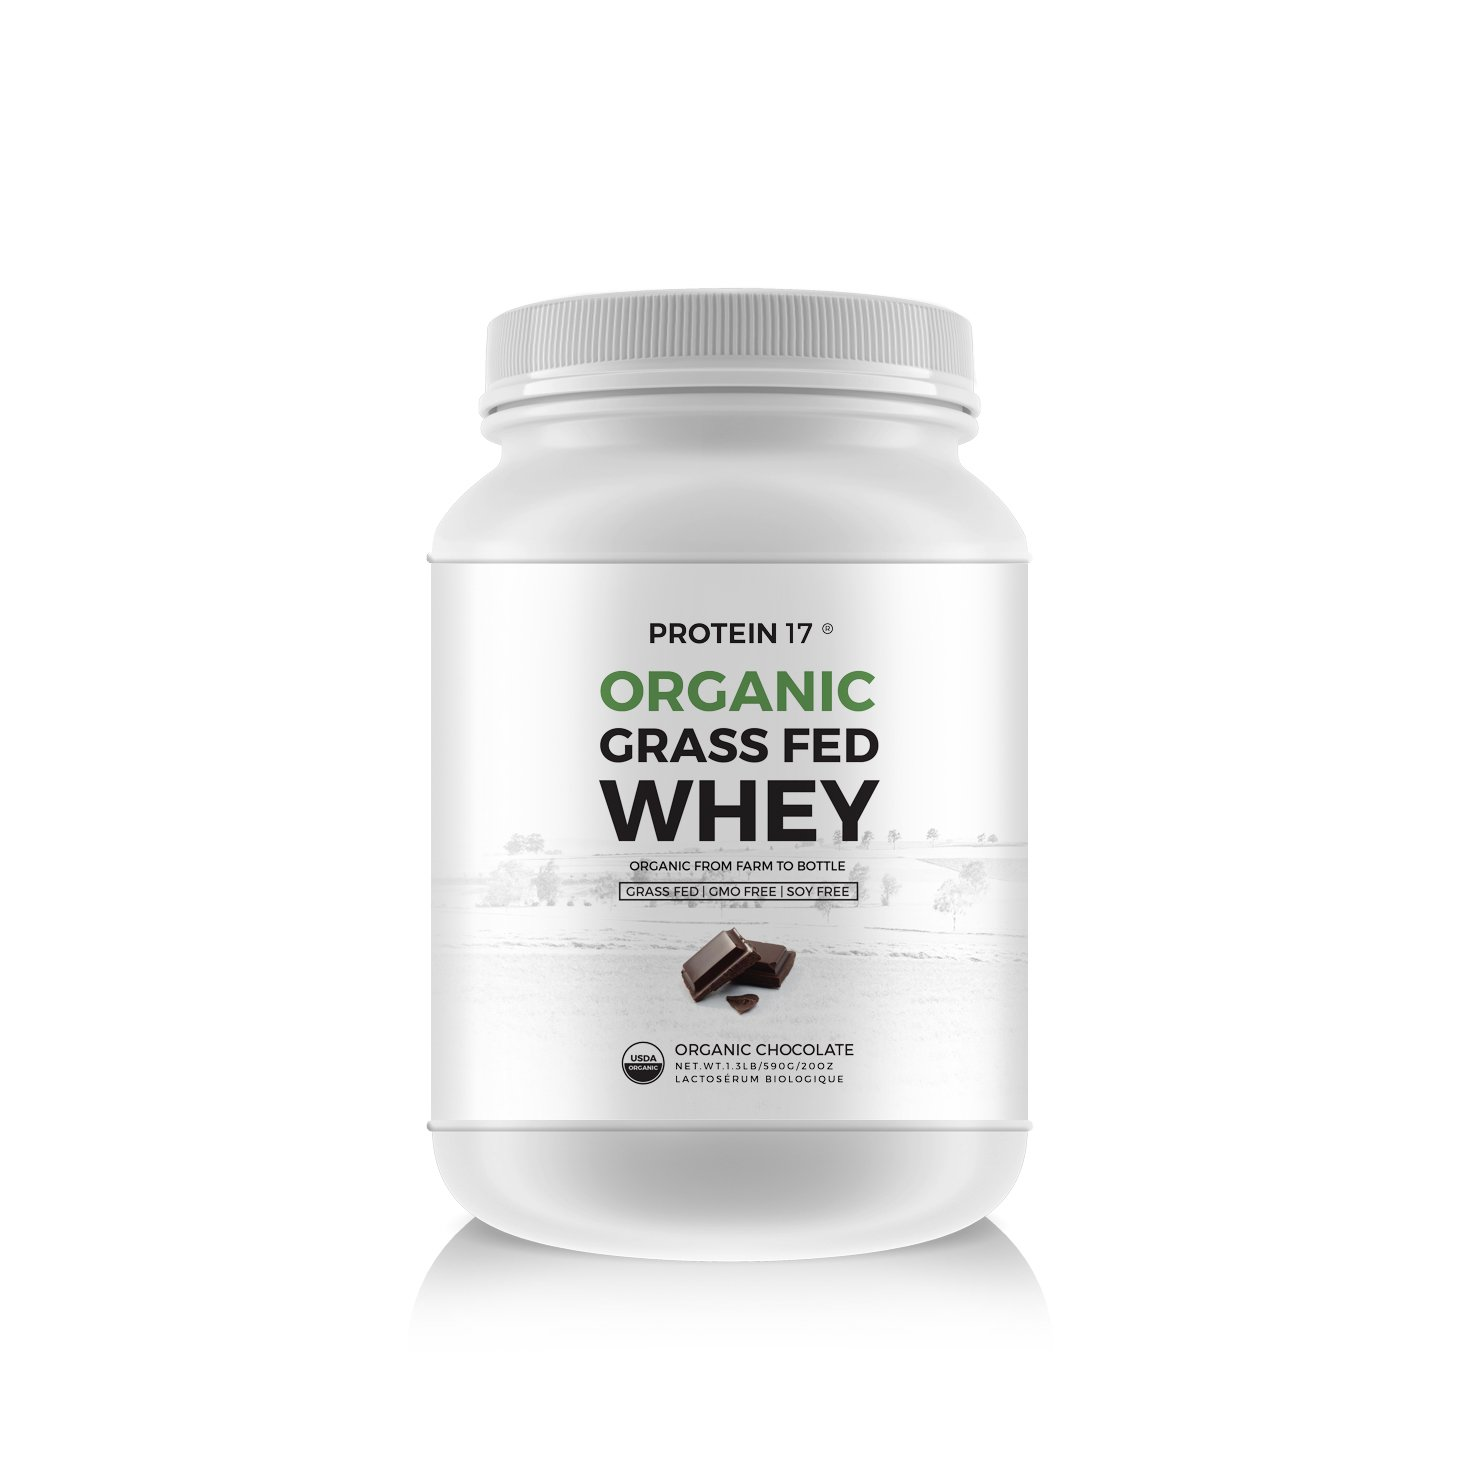 New and Unique - The Ultimate Organic, Grass-Fed Whey Protein, Organic Chocolate, 1.3lb - Protein 17® - Excellent Value by Weight